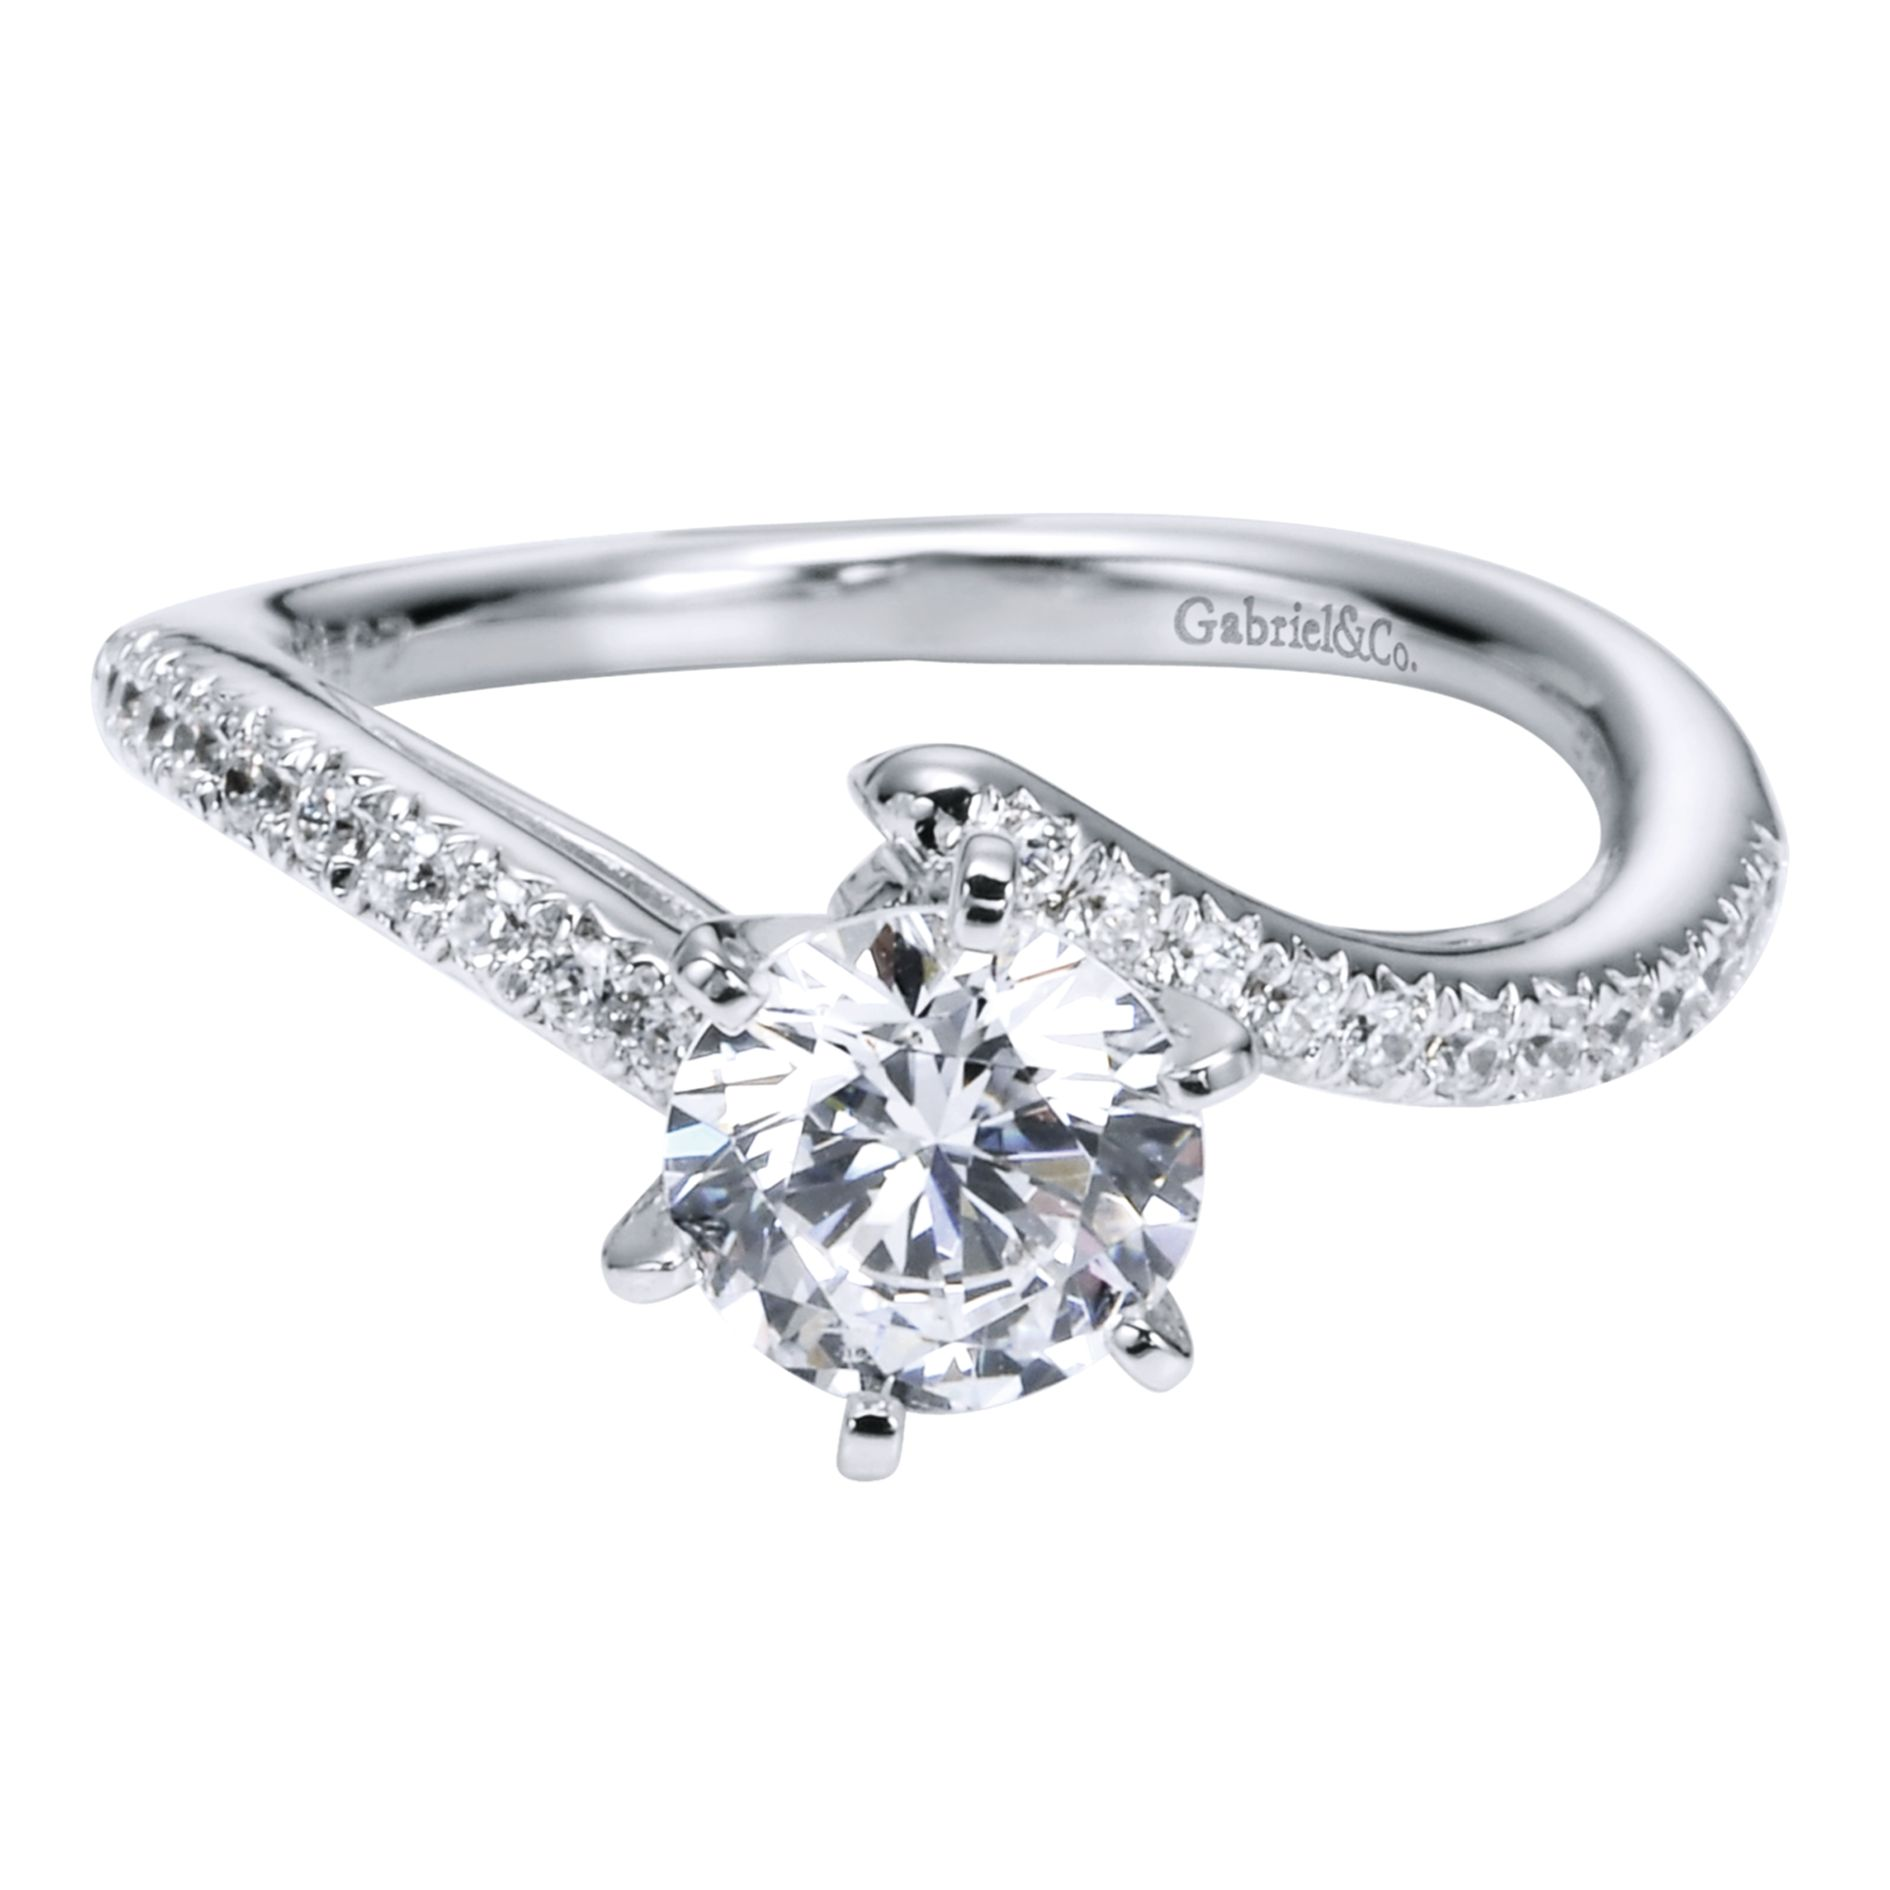 Engagement Rings - WHITE GOLD ROUND BYPASS DIAMOND ENGAGEMENT RING